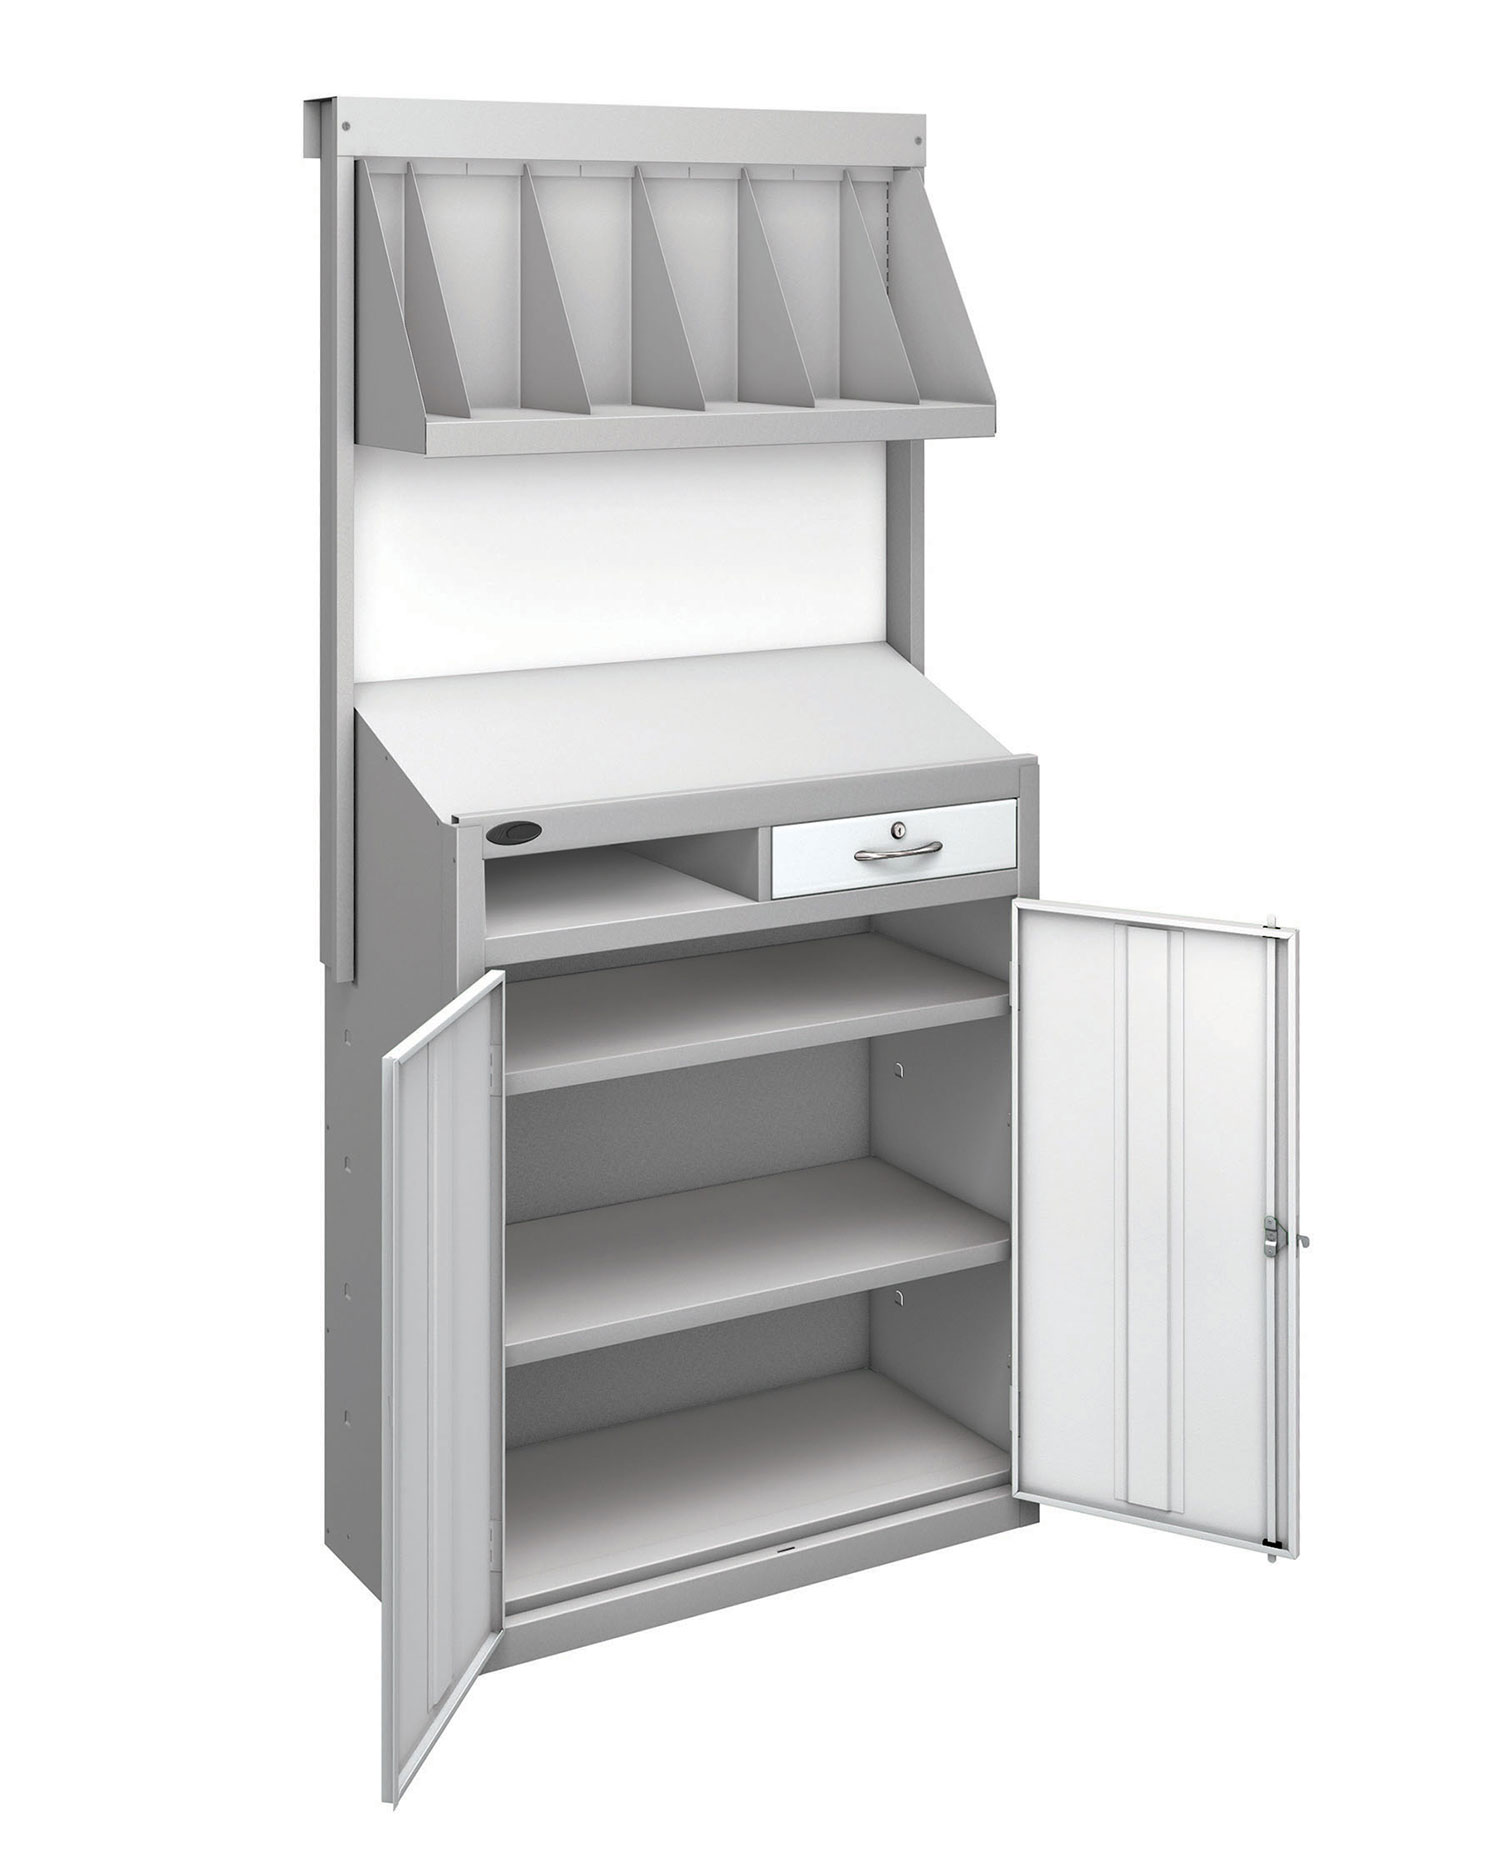 Probe workstation bookshelf white